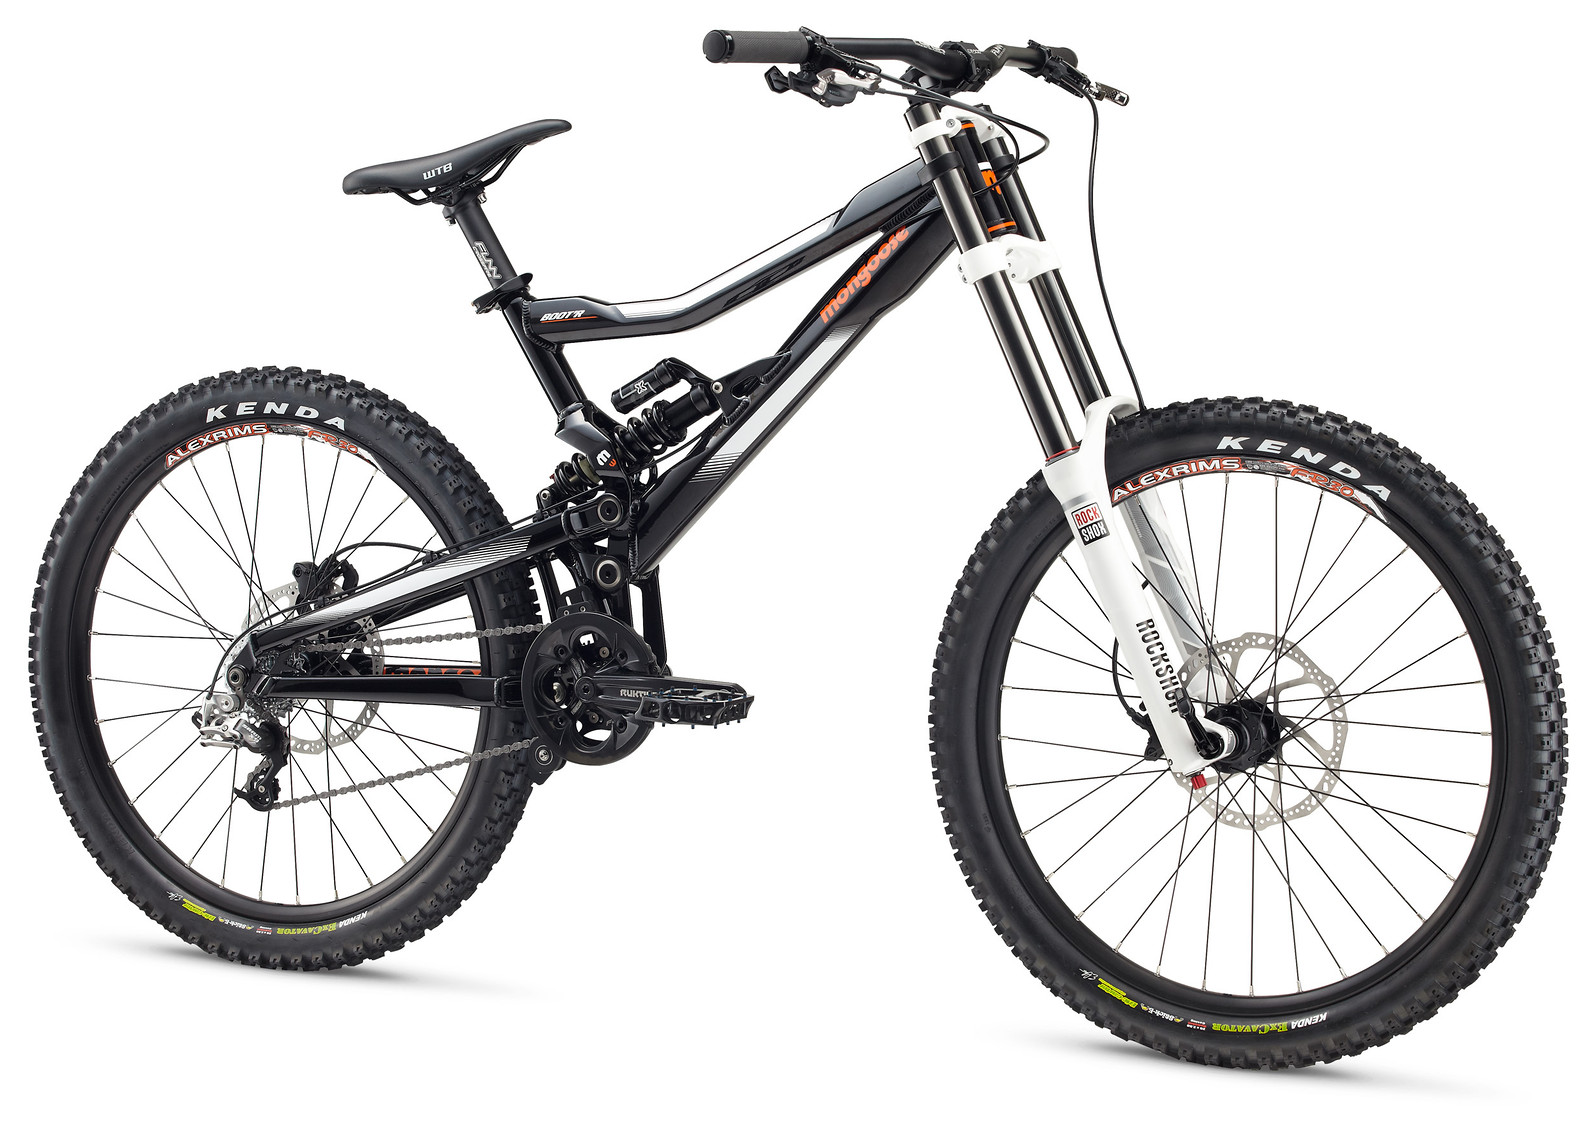 2014 Mongoose Boot'r Bike - Reviews, Comparisons, Specs ...